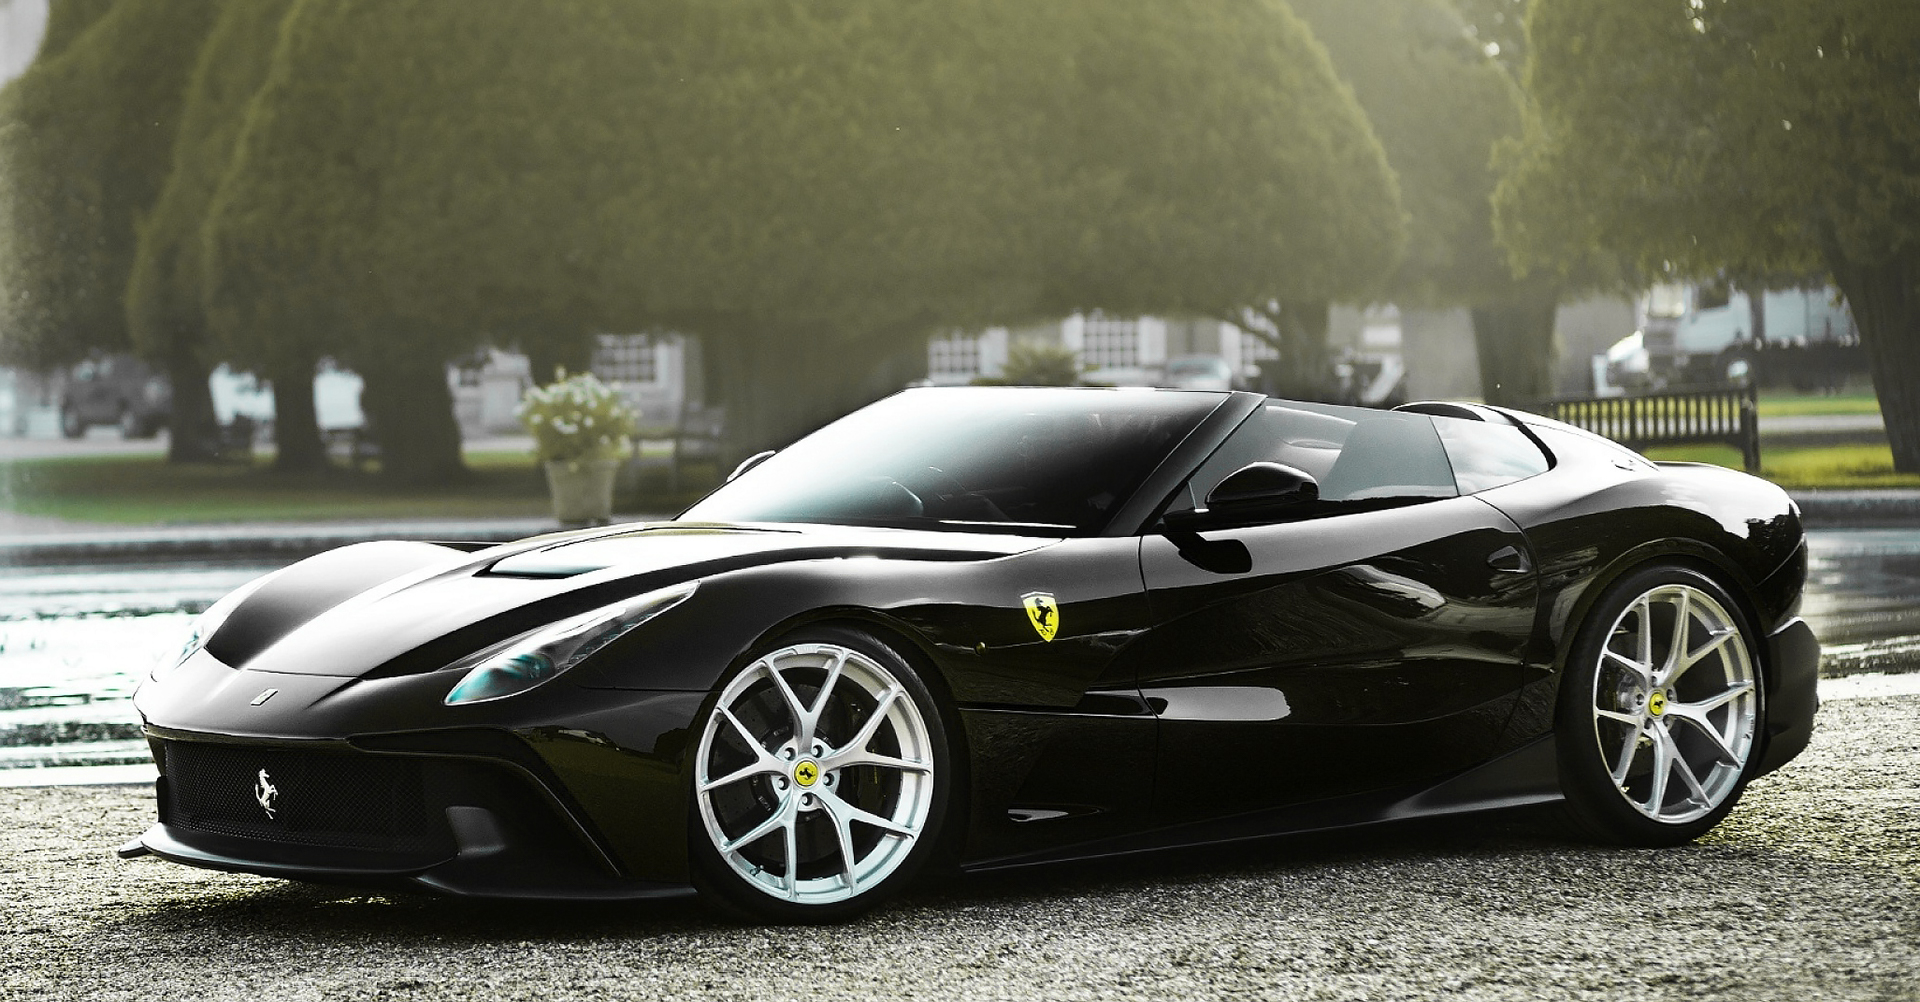 custom ferrari f12 tdf with Ferrari F12 Trs on 2016 novitec rosso ferrari f12 n largo s Wallpapers together with Ferrari F12 Trs likewise Best White Ferrari likewise 2018 Ford Gt500 in addition Gordon Ramsay Boasts Brand New 1million Ferrari Collecting Dealership.